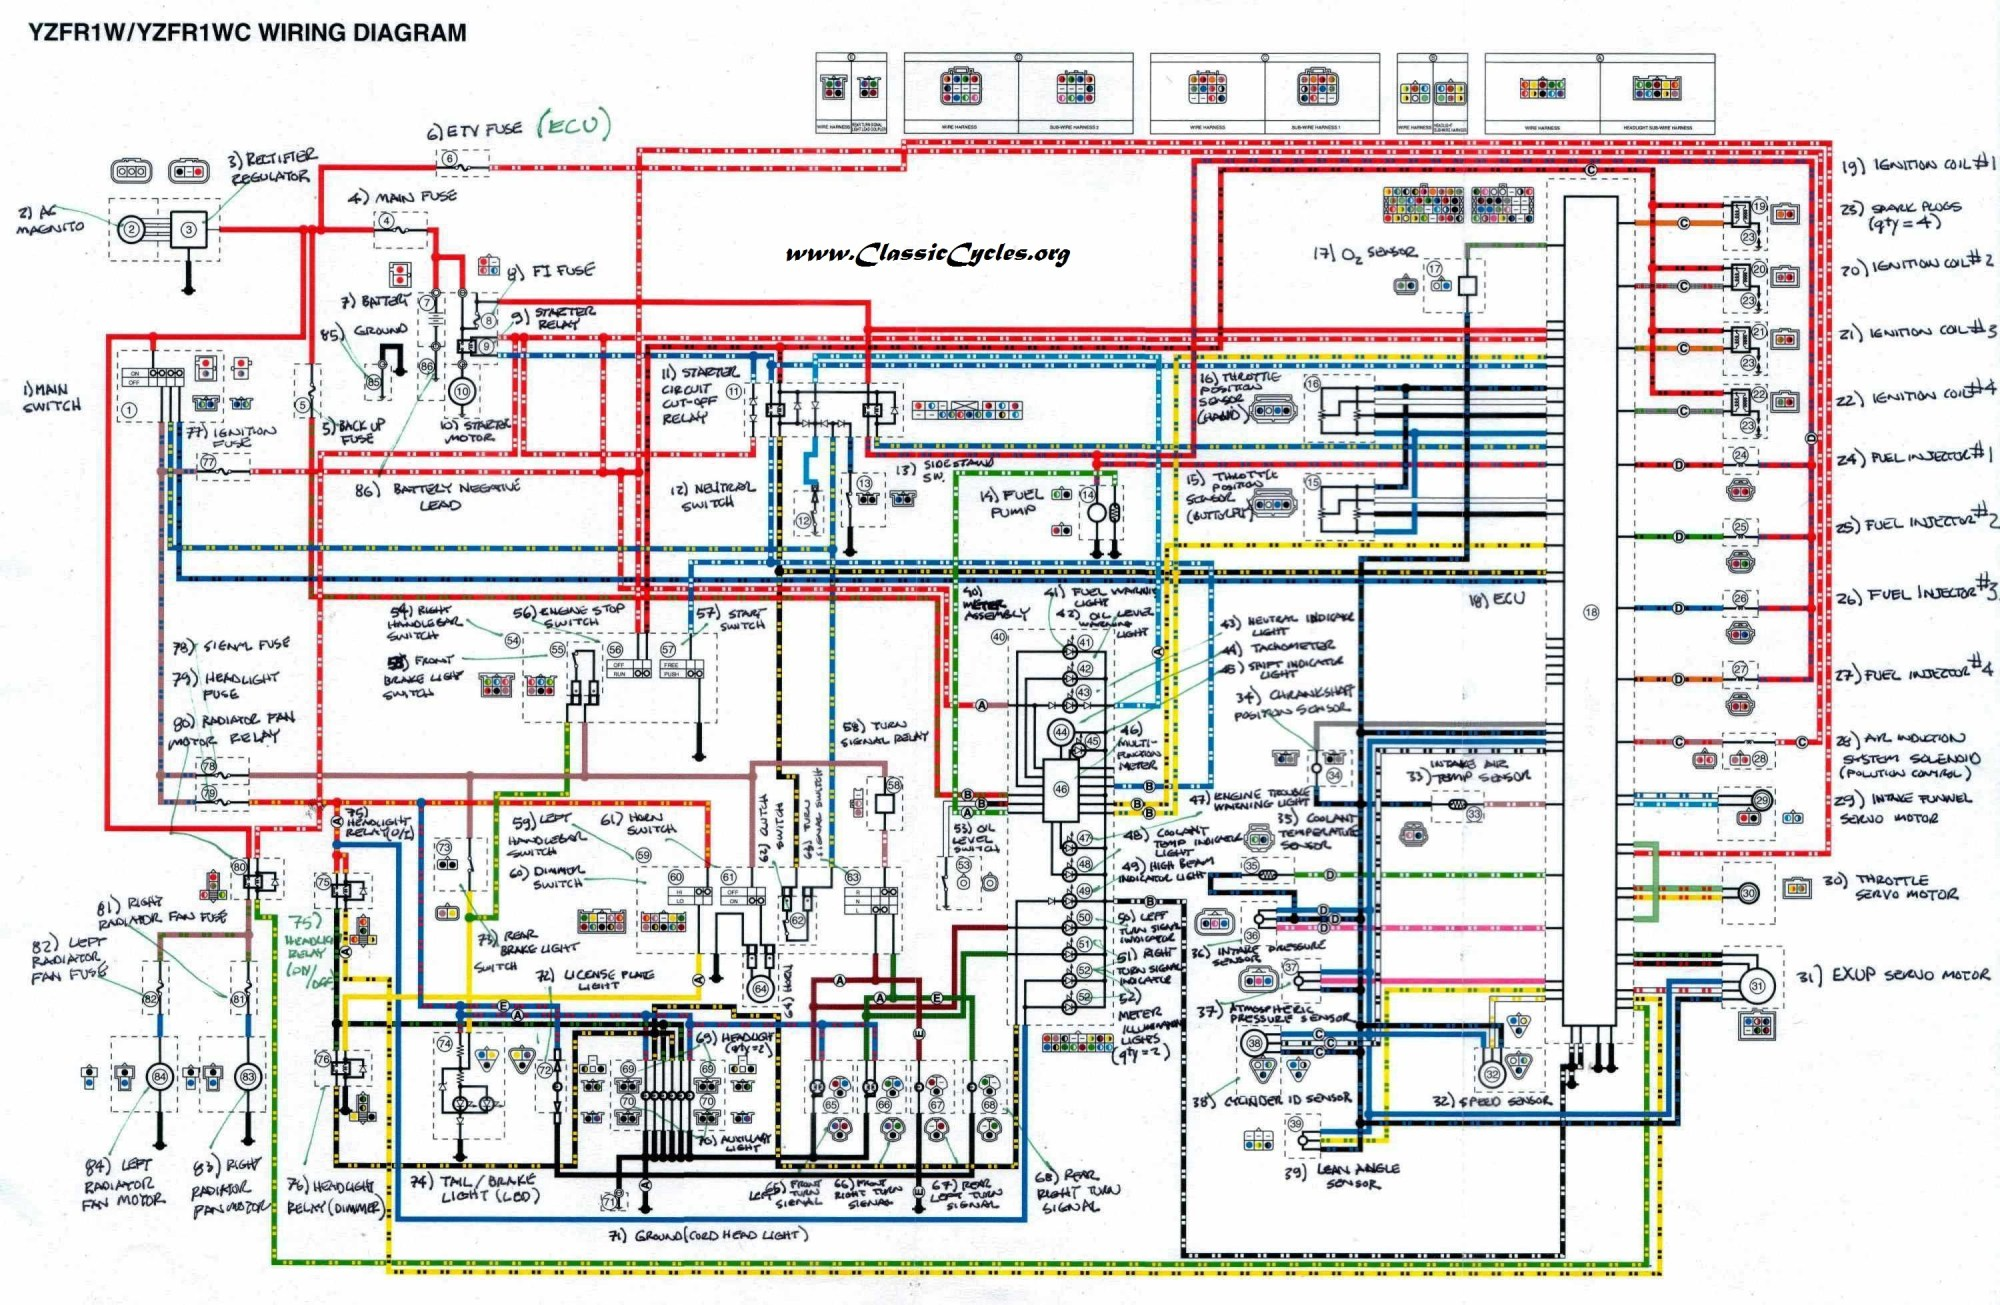 hight resolution of 2002 yamaha wiring diagram wiring diagram name 2002 r1 wiring diagram wiring diagram mega 2002 yamaha